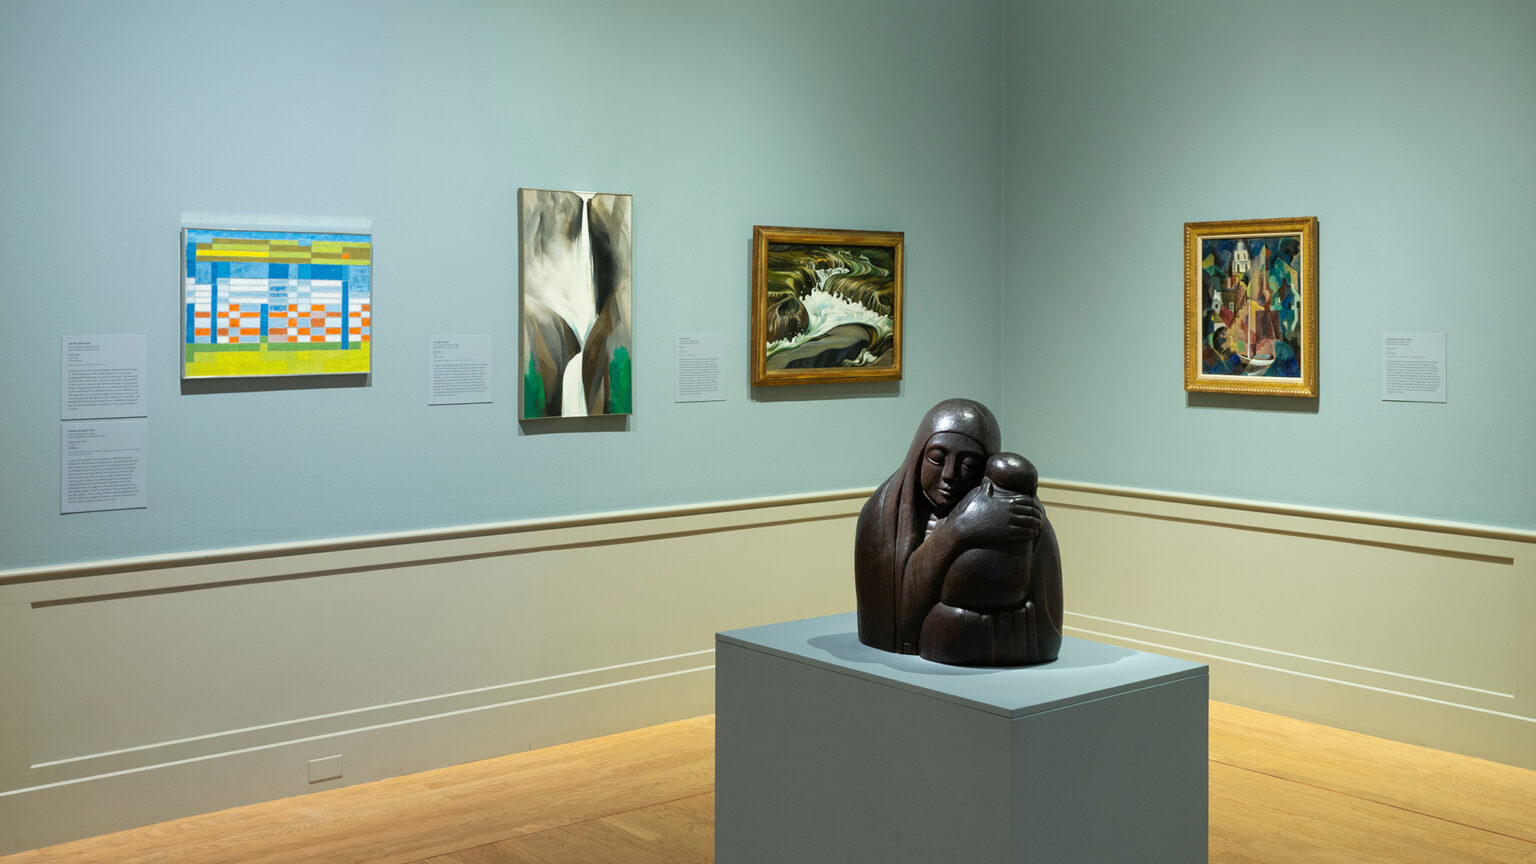 Image: Installation view, By Their Creative Force: American Women Modernists. Photo by Mitro Hood.